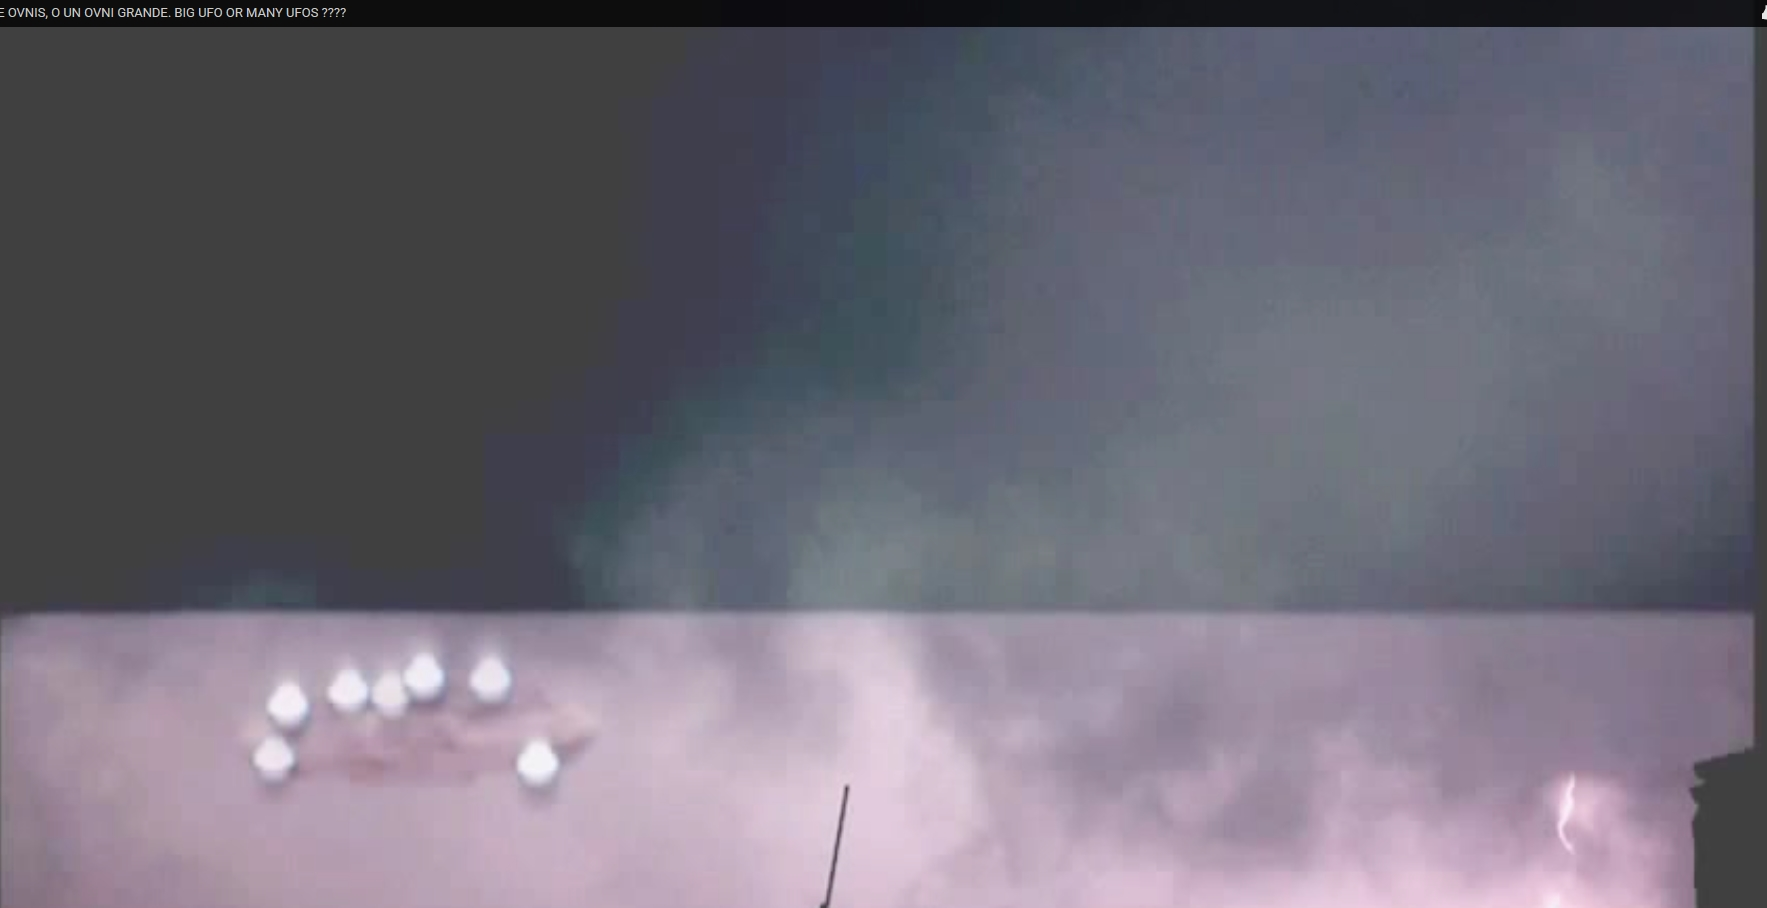 Strange formation of lights captured in Mexico. UFO?